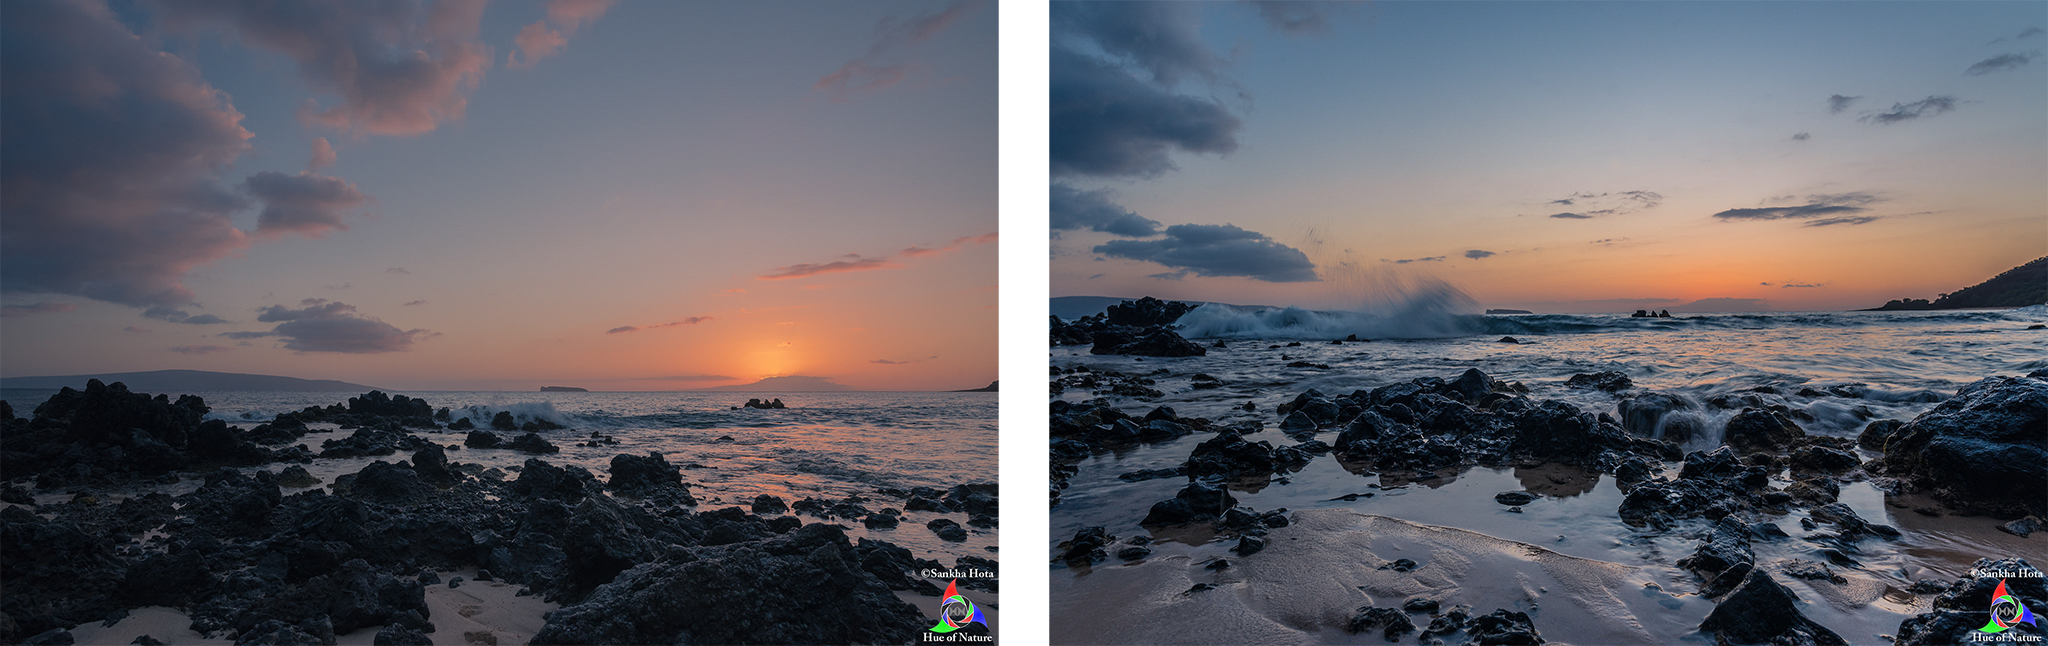 Sunset (left), After sunset (right) at Makena Beach